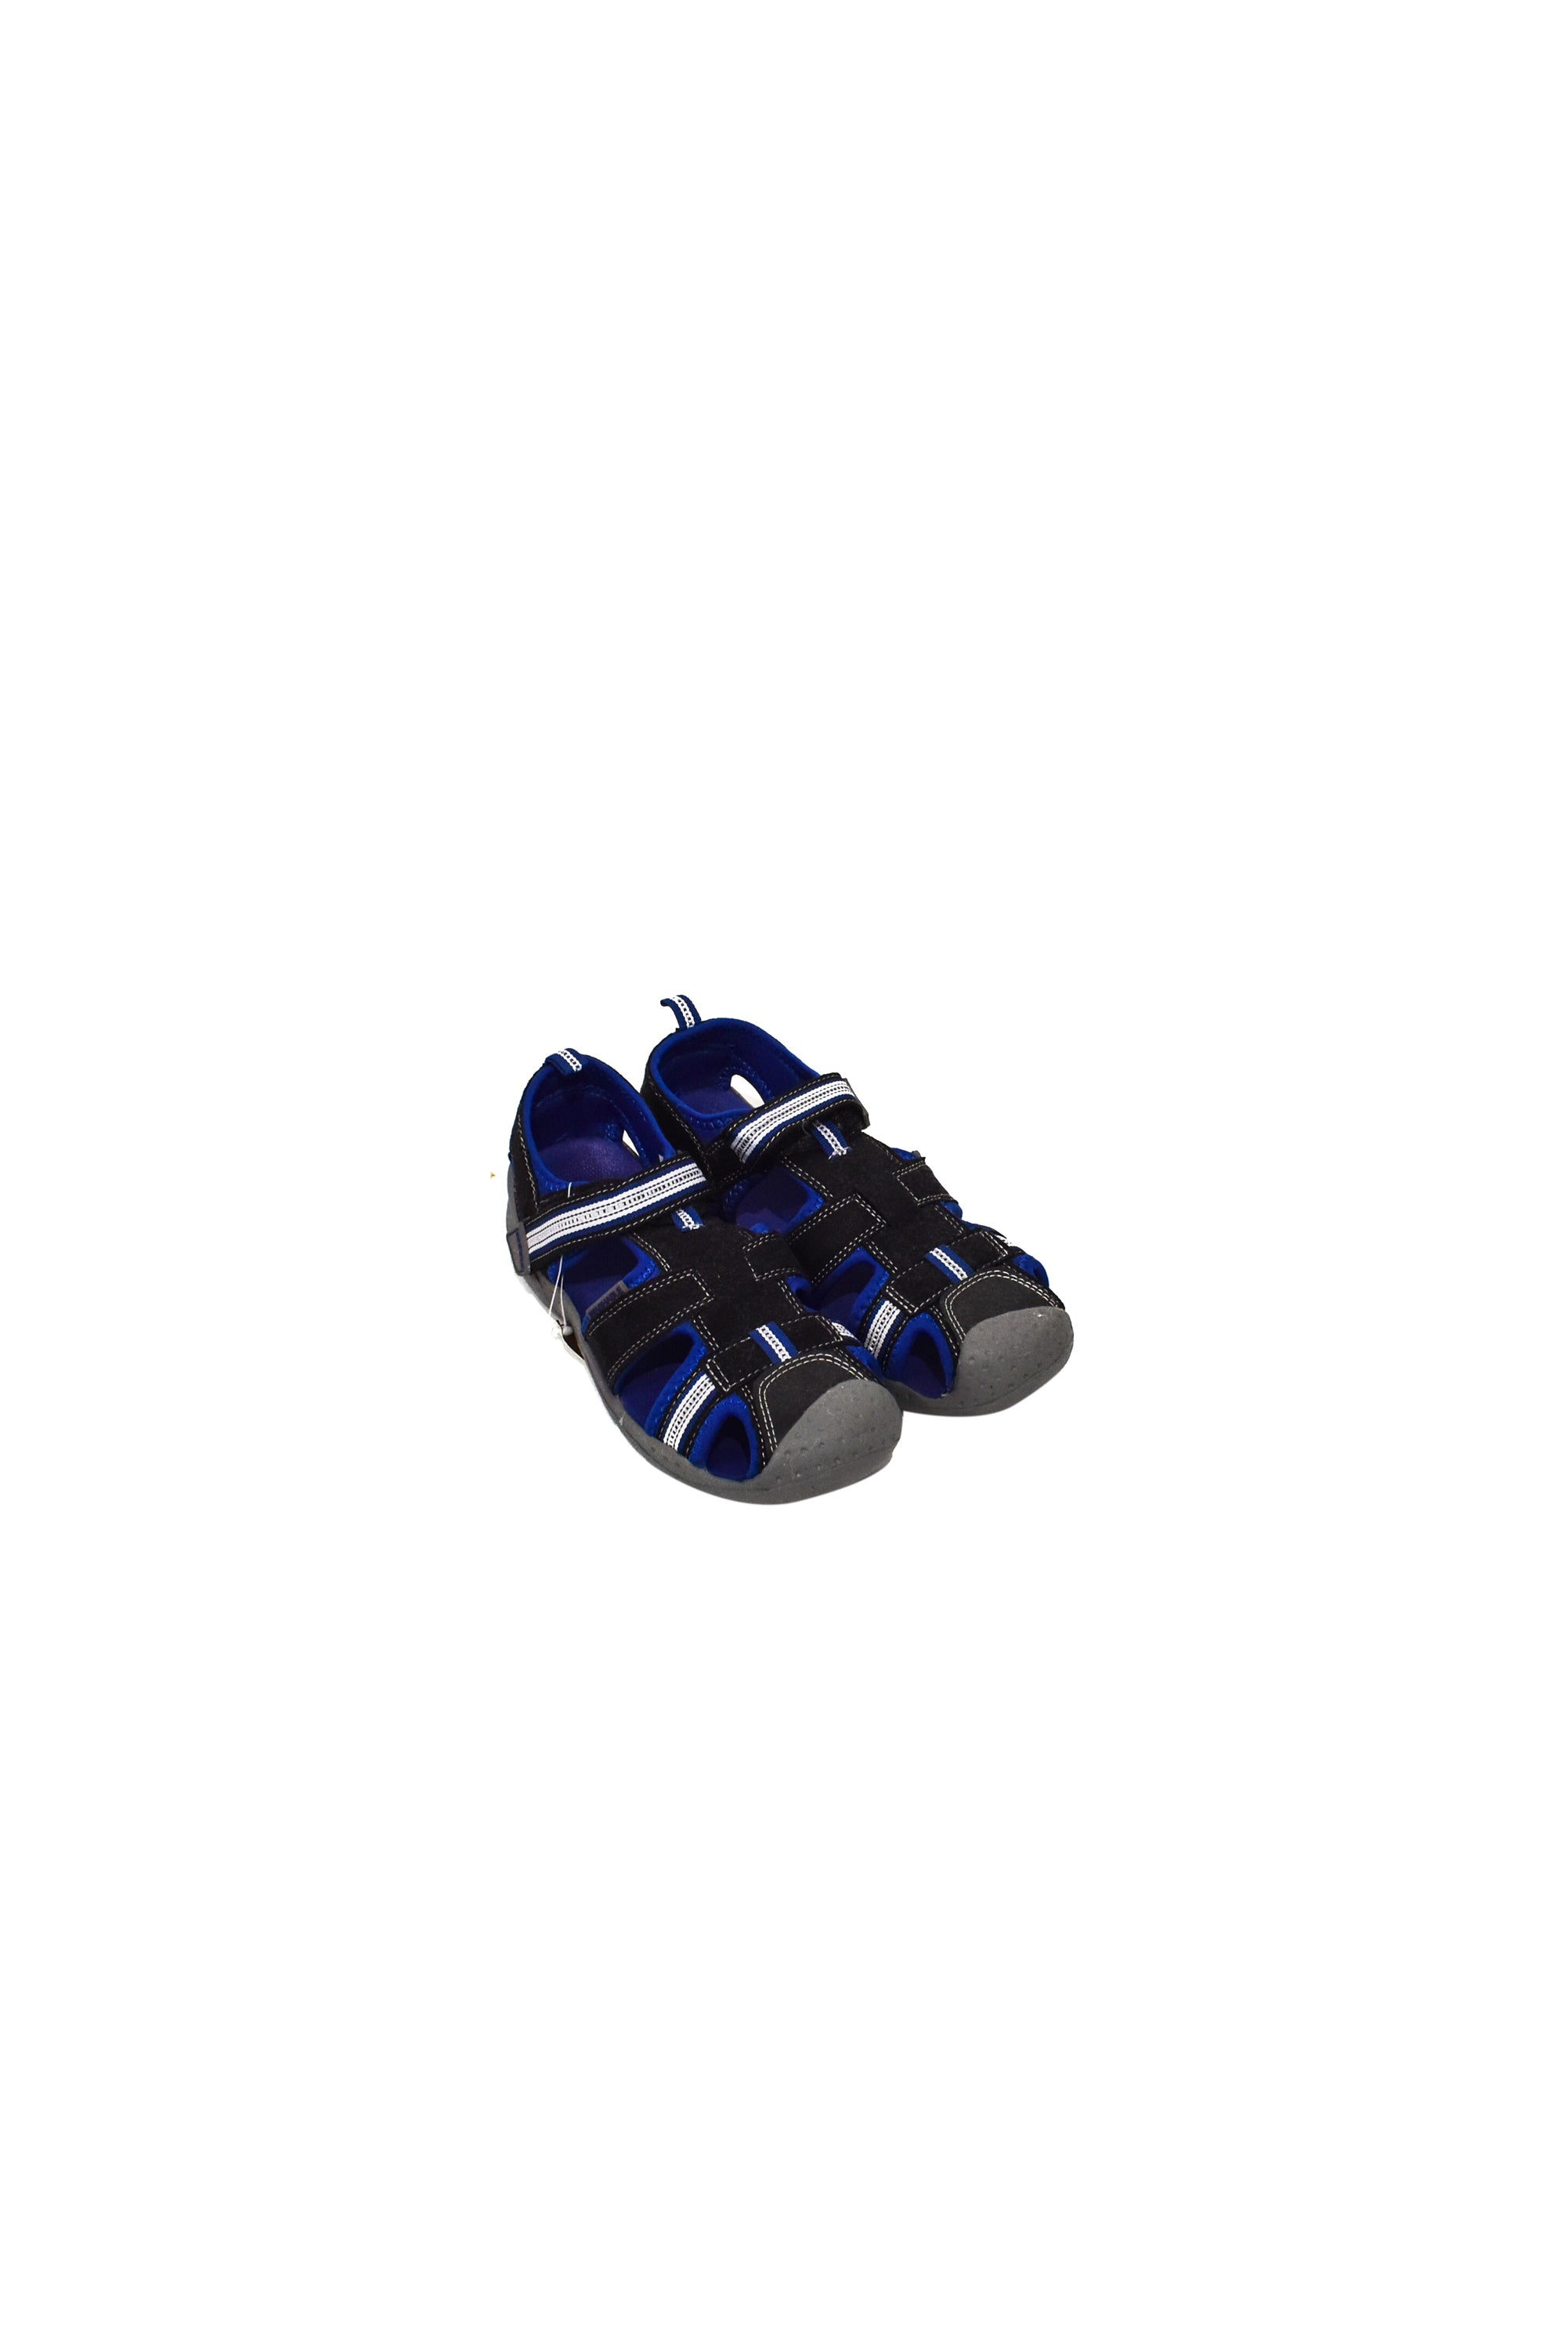 2a8ad67b3ae 10025163 pediped Kids~Shoes 7-8 (EU 33) at Retykle